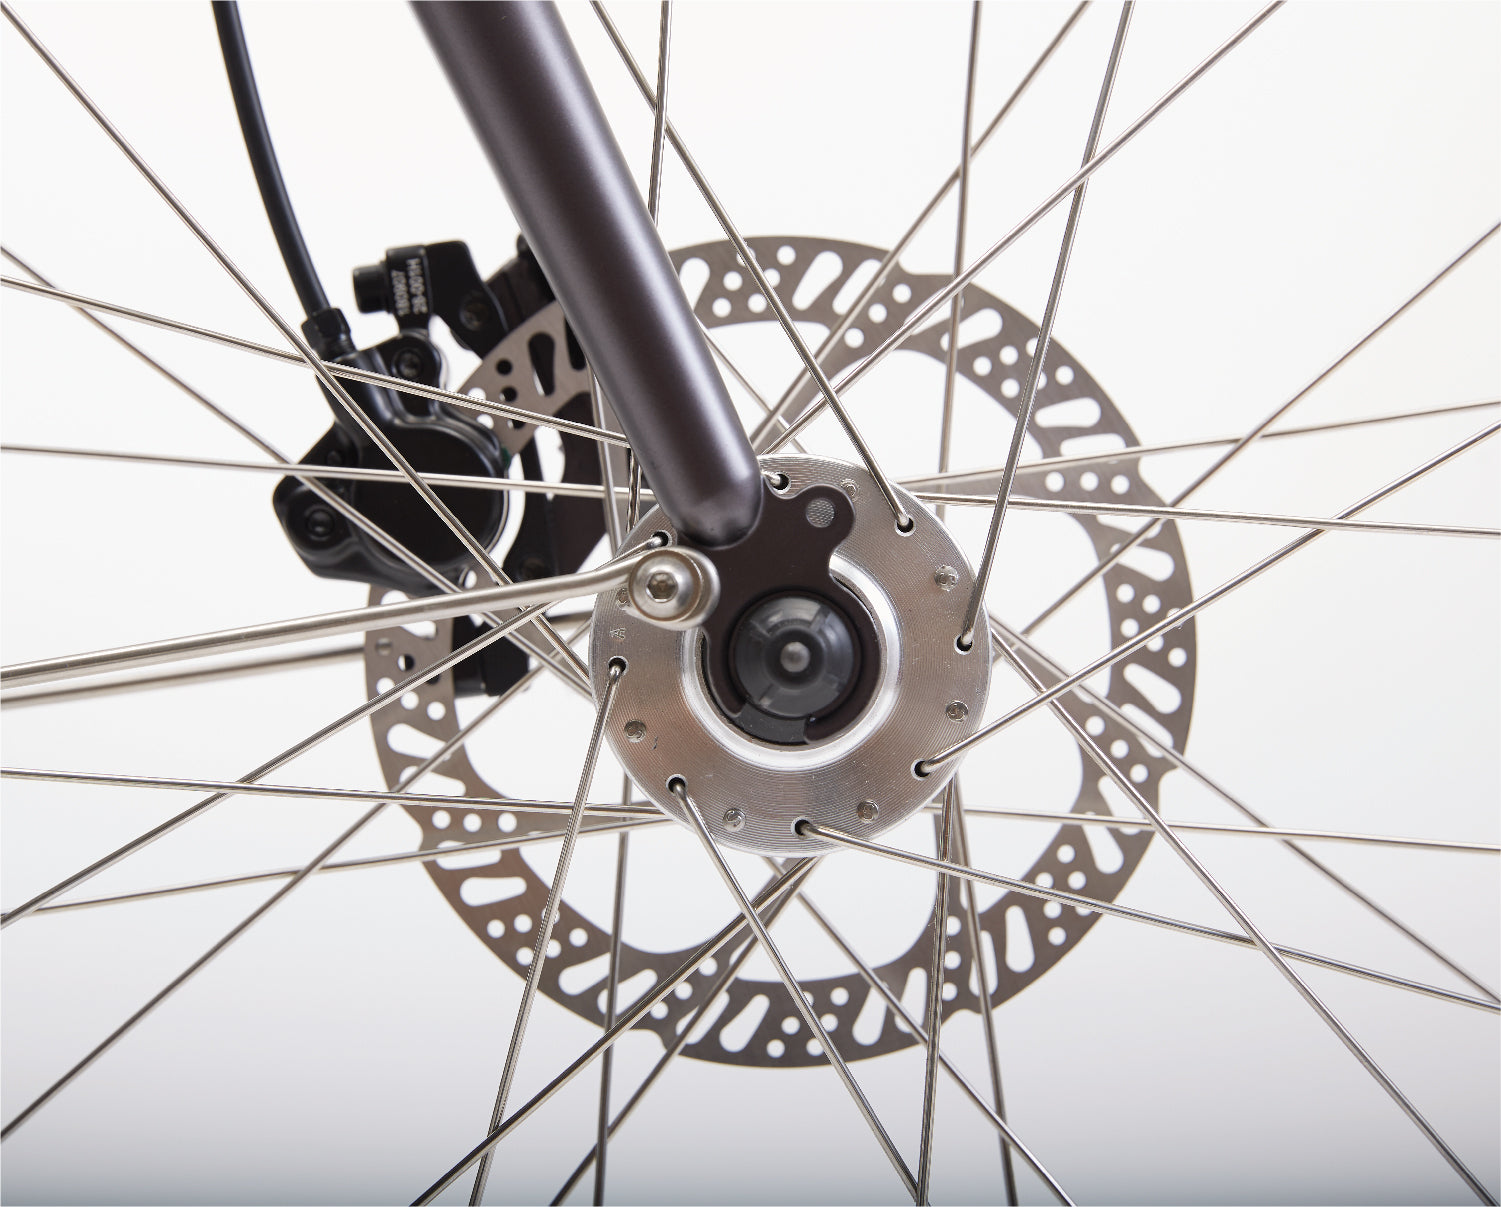 In The Details - Hydraulic Disc Brakes